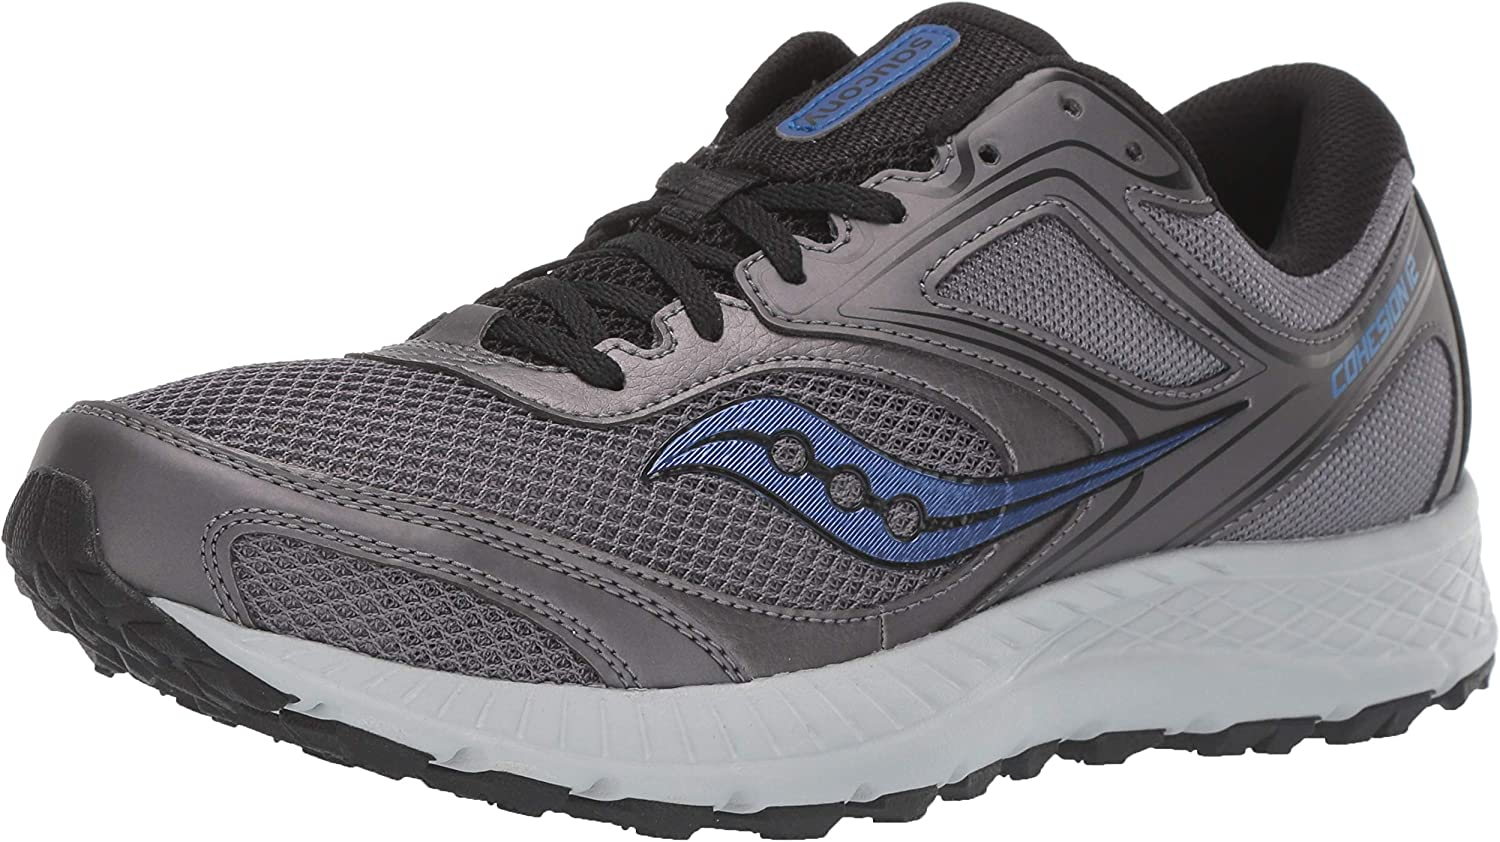 Saucony Men s Versafoam Cohesion Tr 12 Road Running Shoe